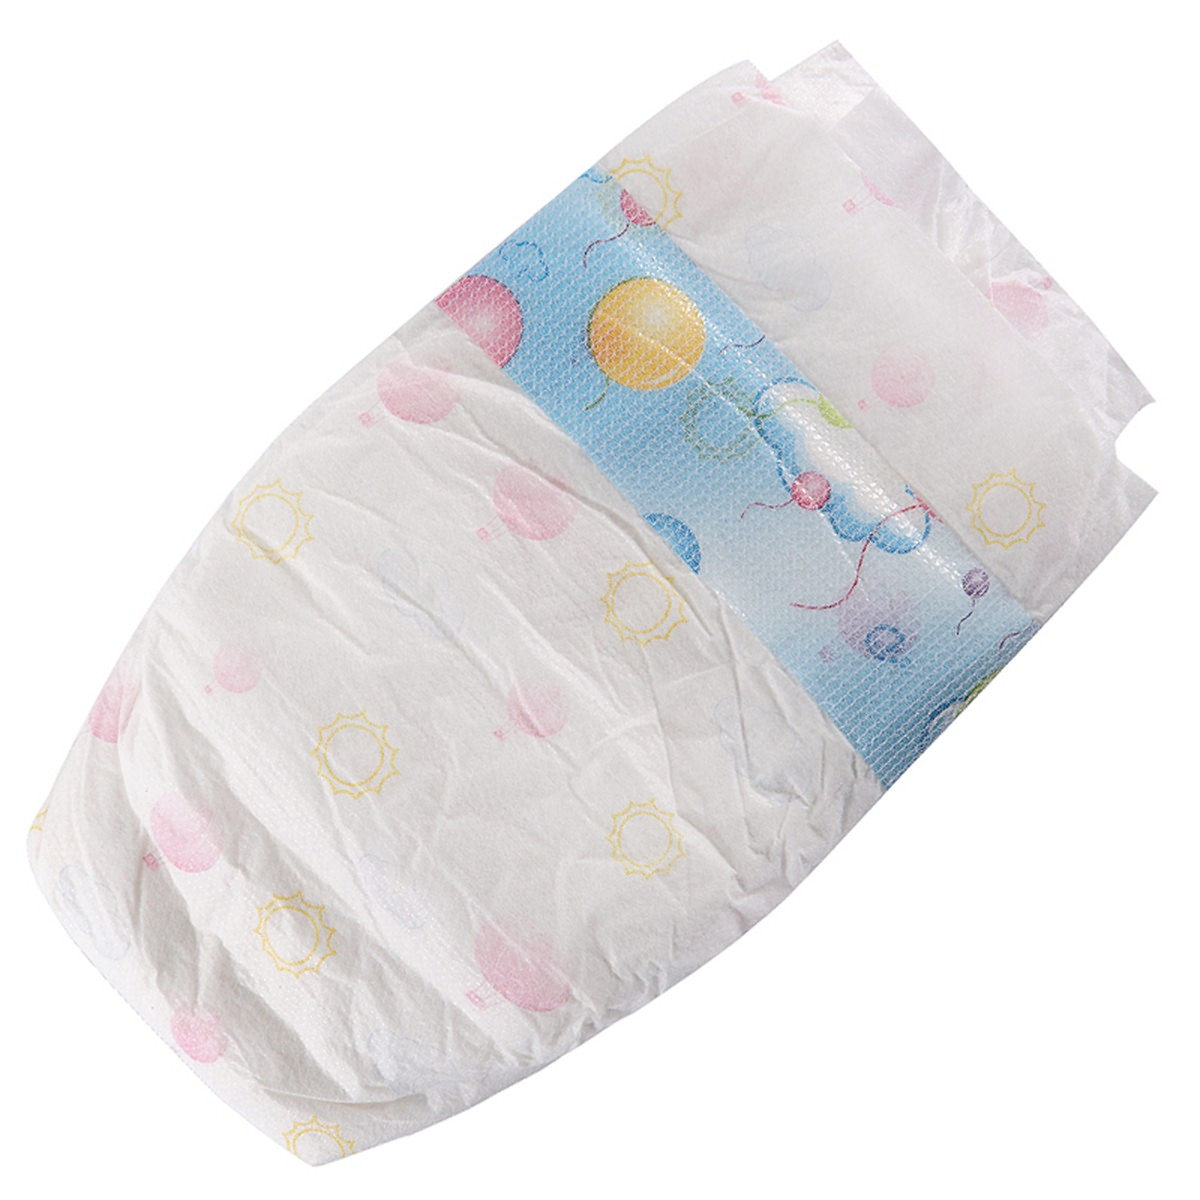 wholesale diapers